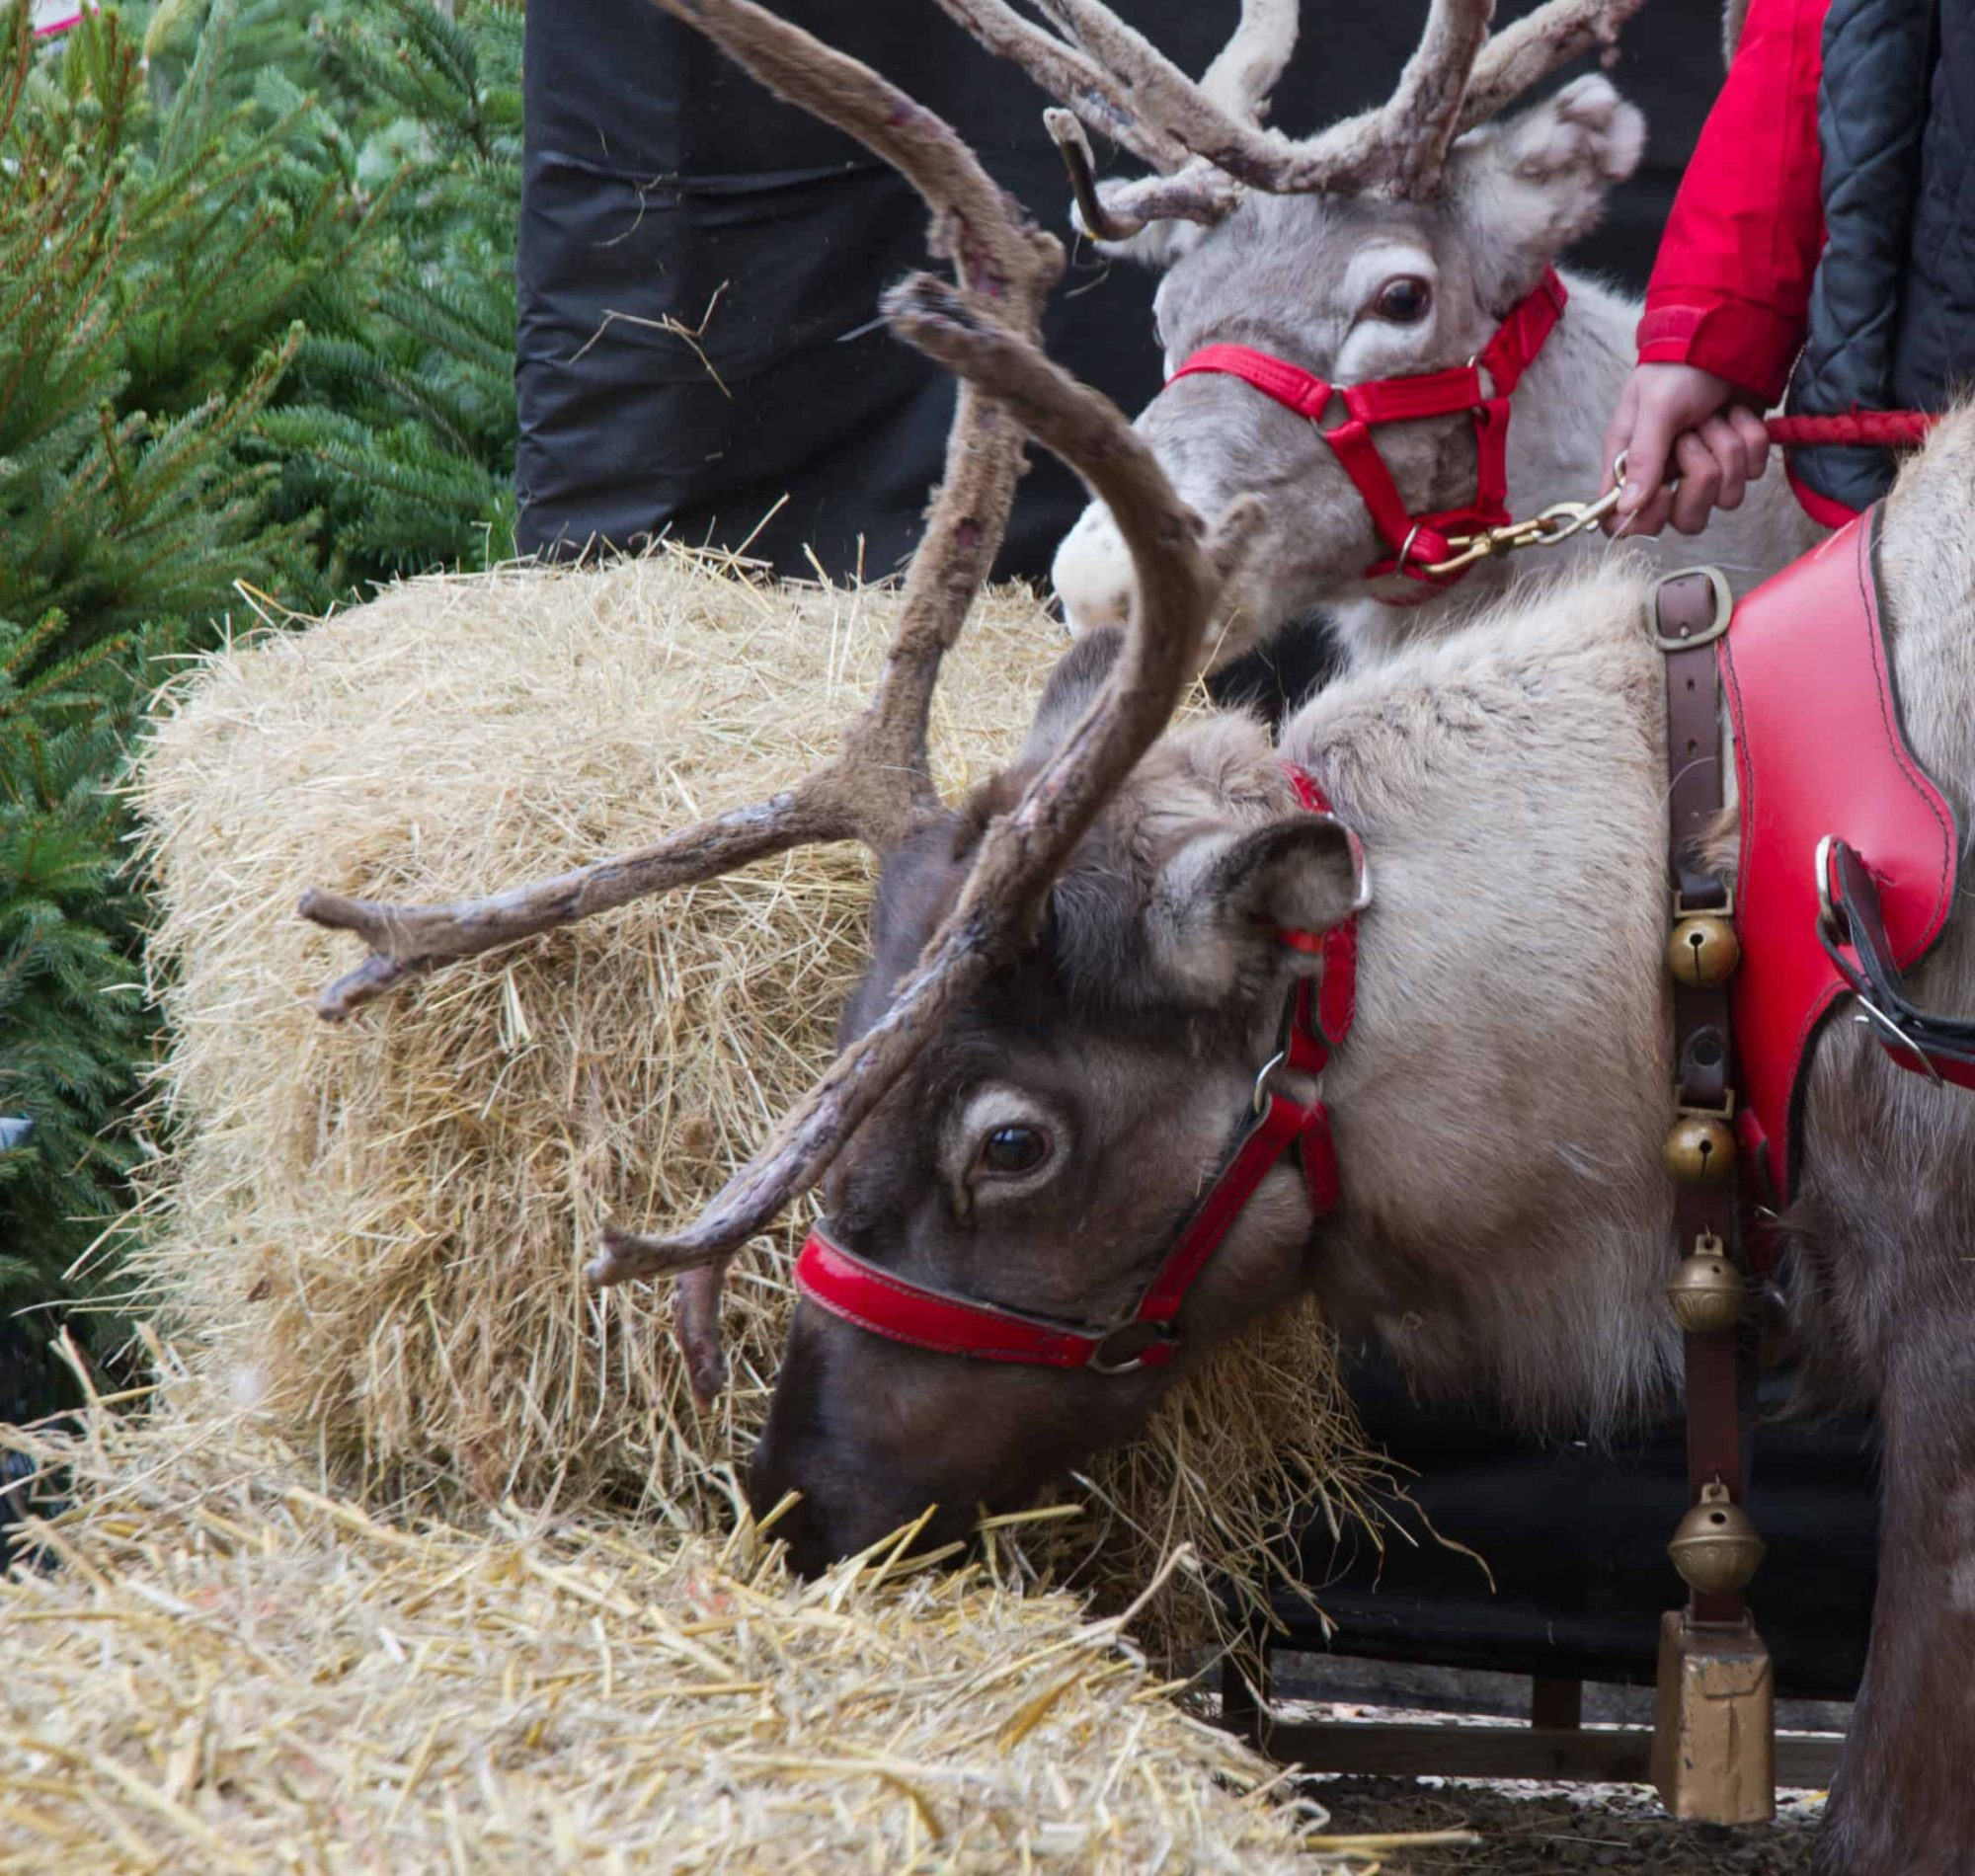 Two reindeer harnessed with bells and ready to pull Santa's sleigh.